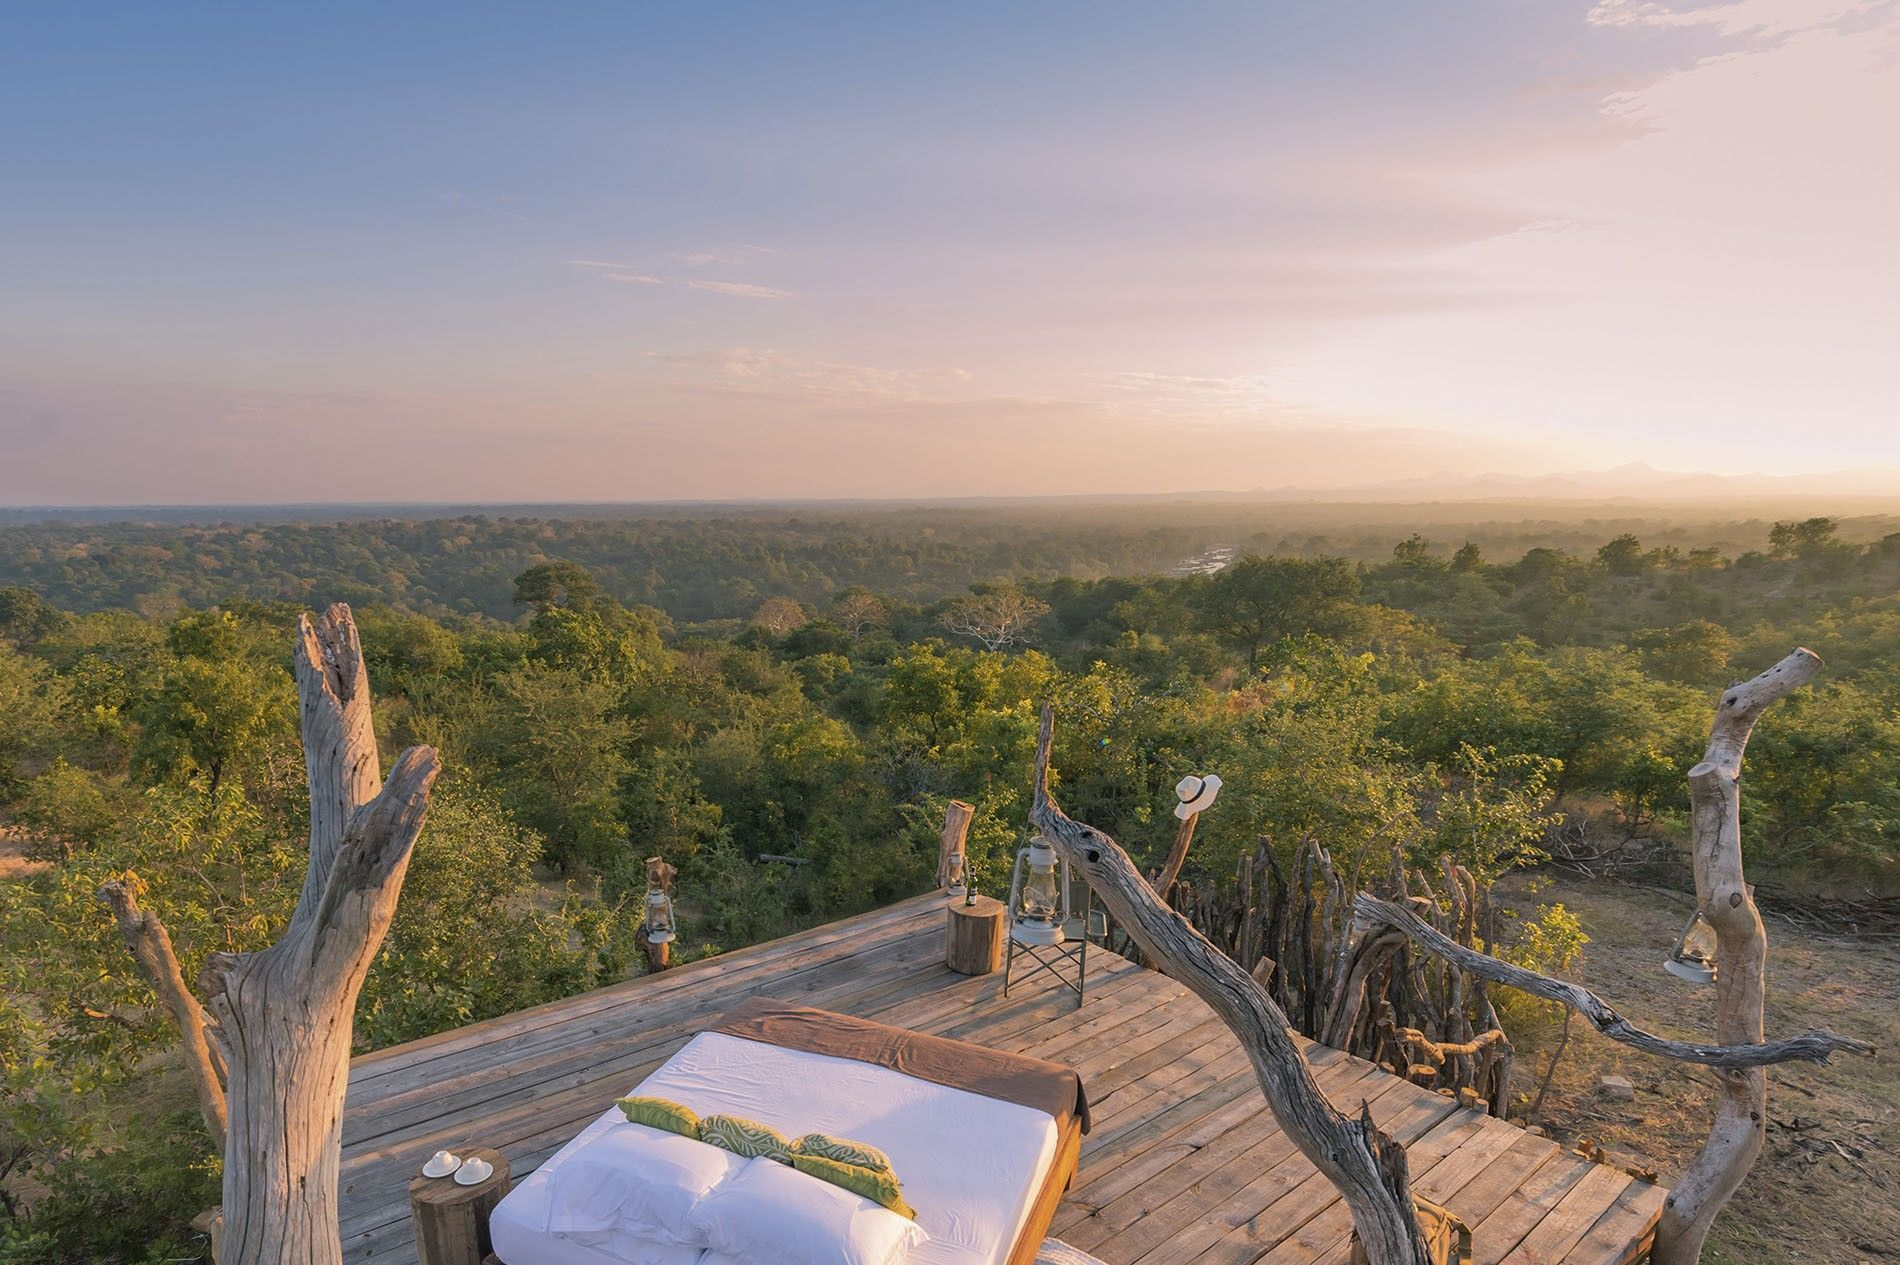 The 'star bed' at Mkulumadzi Lodge in Majete Wildlife Reserve